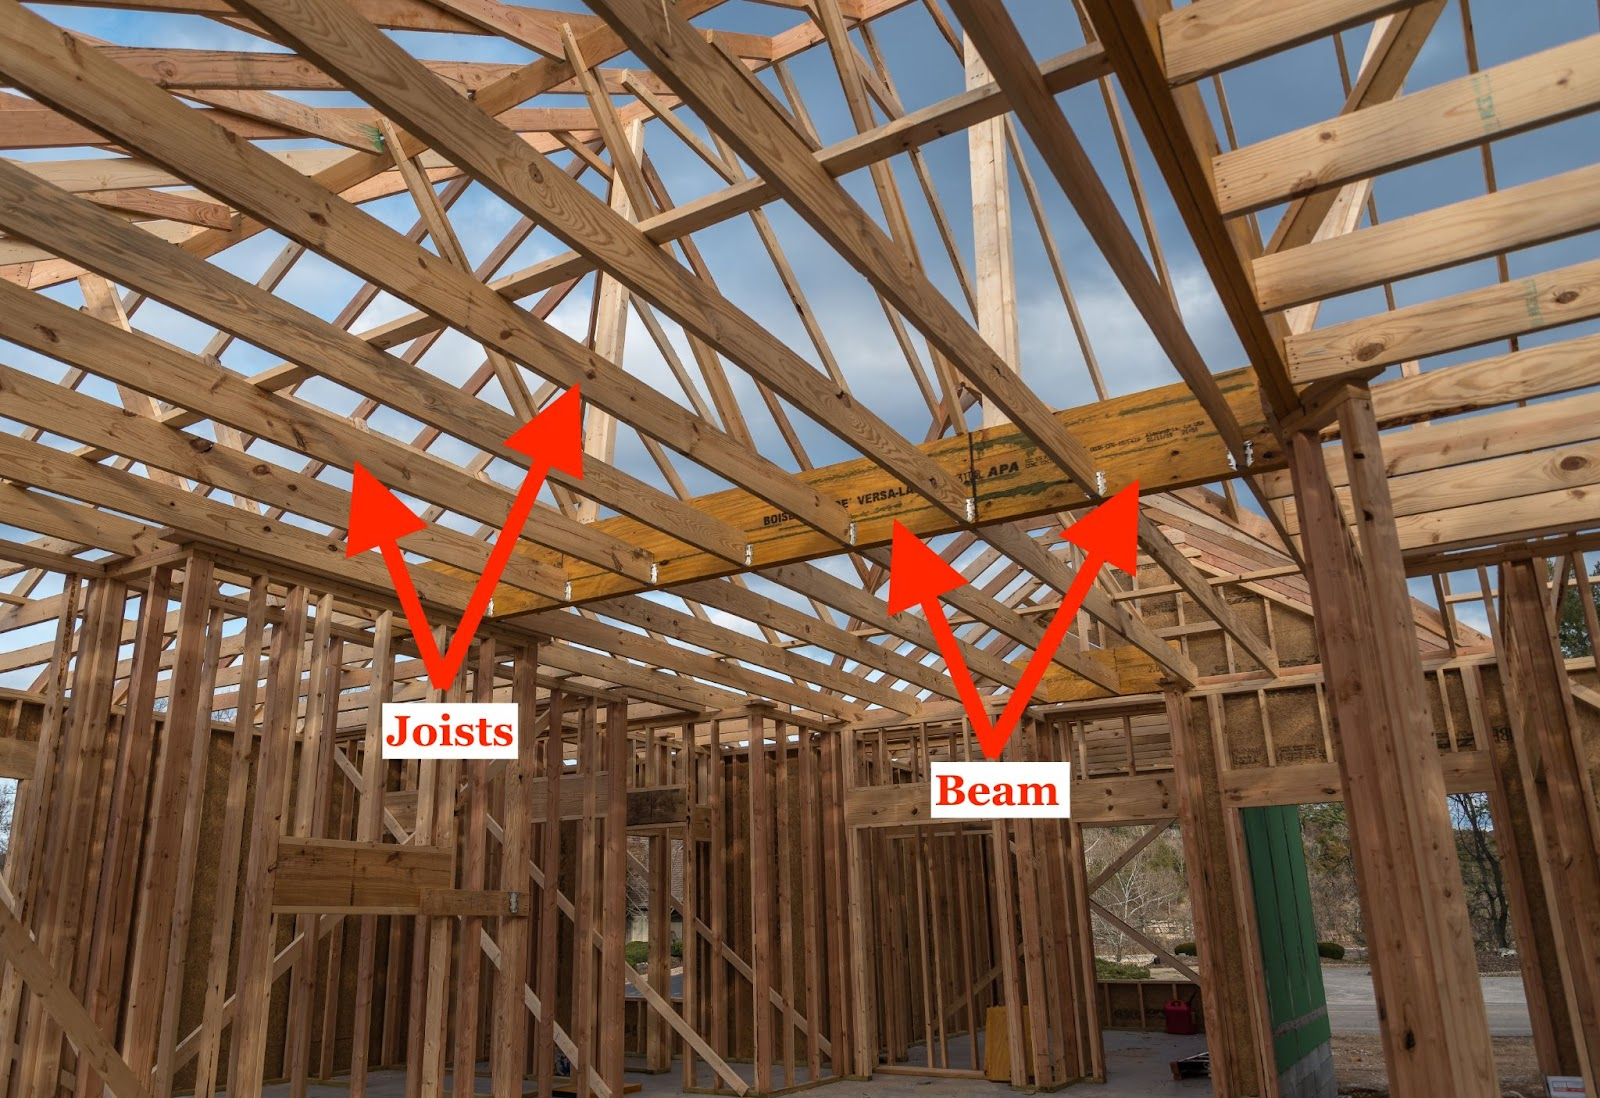 structural engineering evaluation with beam and joists